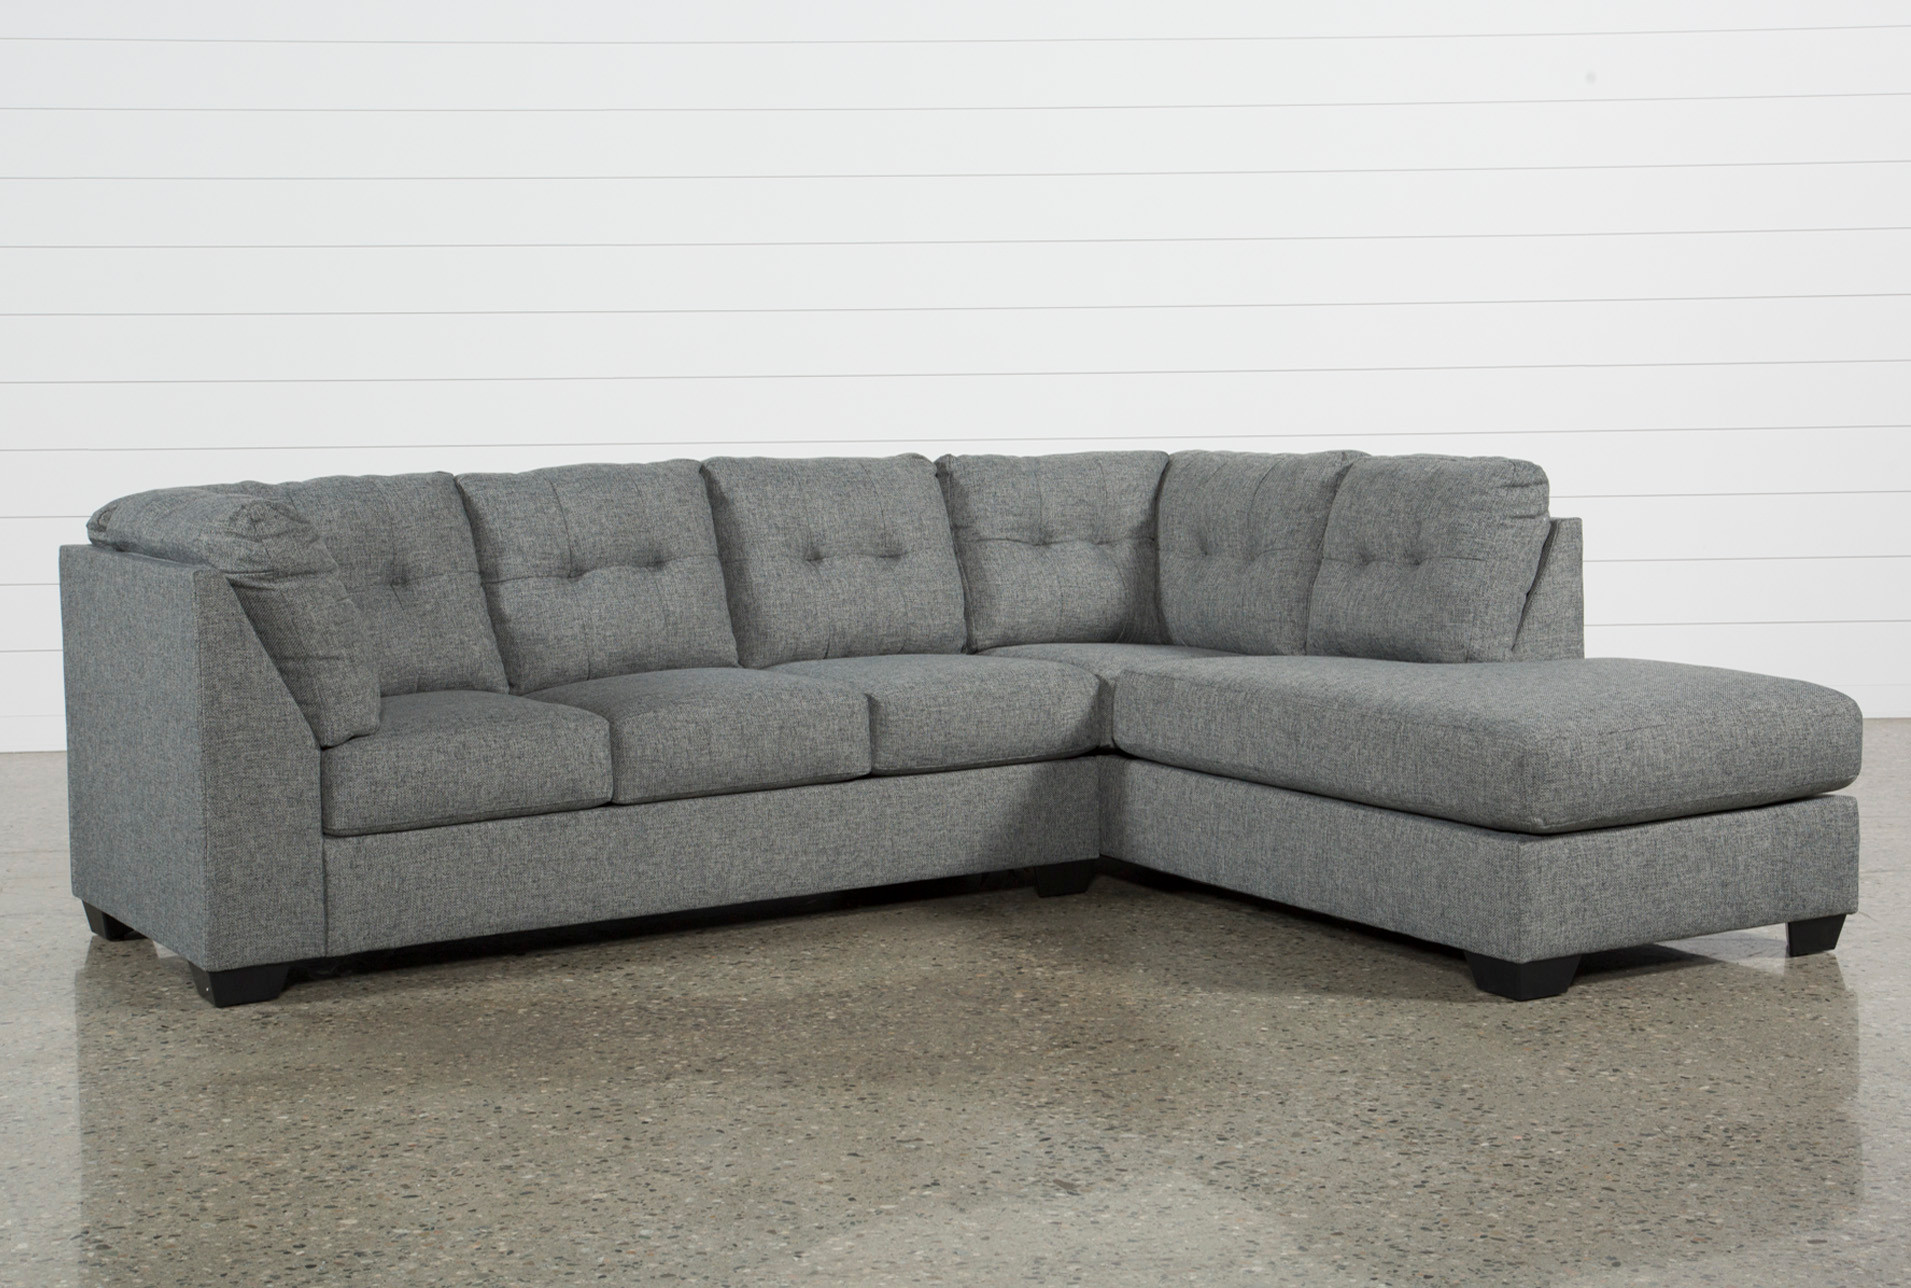 Attrayant Arrowmask 2 Piece Sectional W/Raf Chaise   360